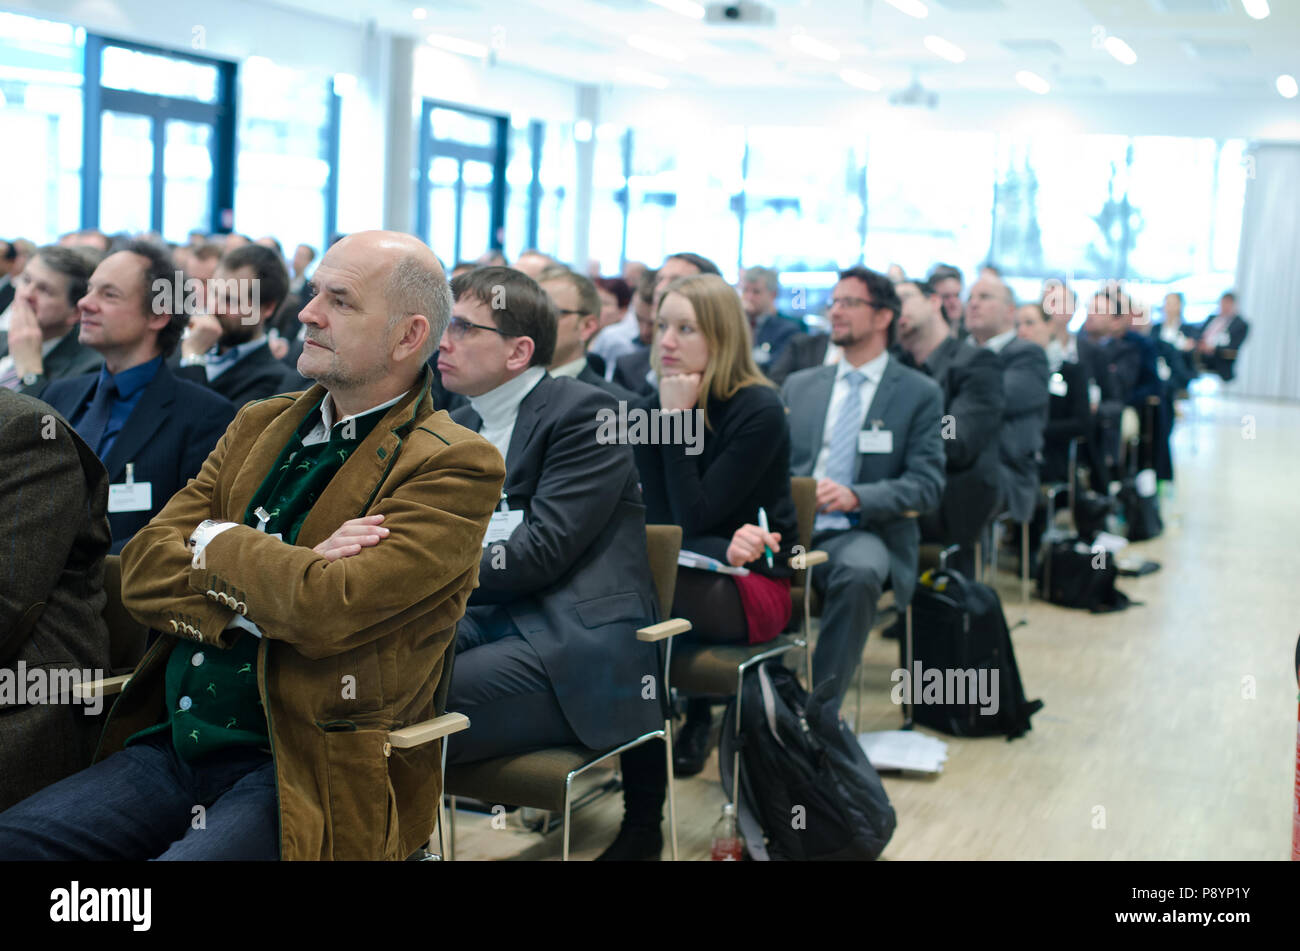 Businessmen listening to spokesman during a business congress business conference - Stock Image